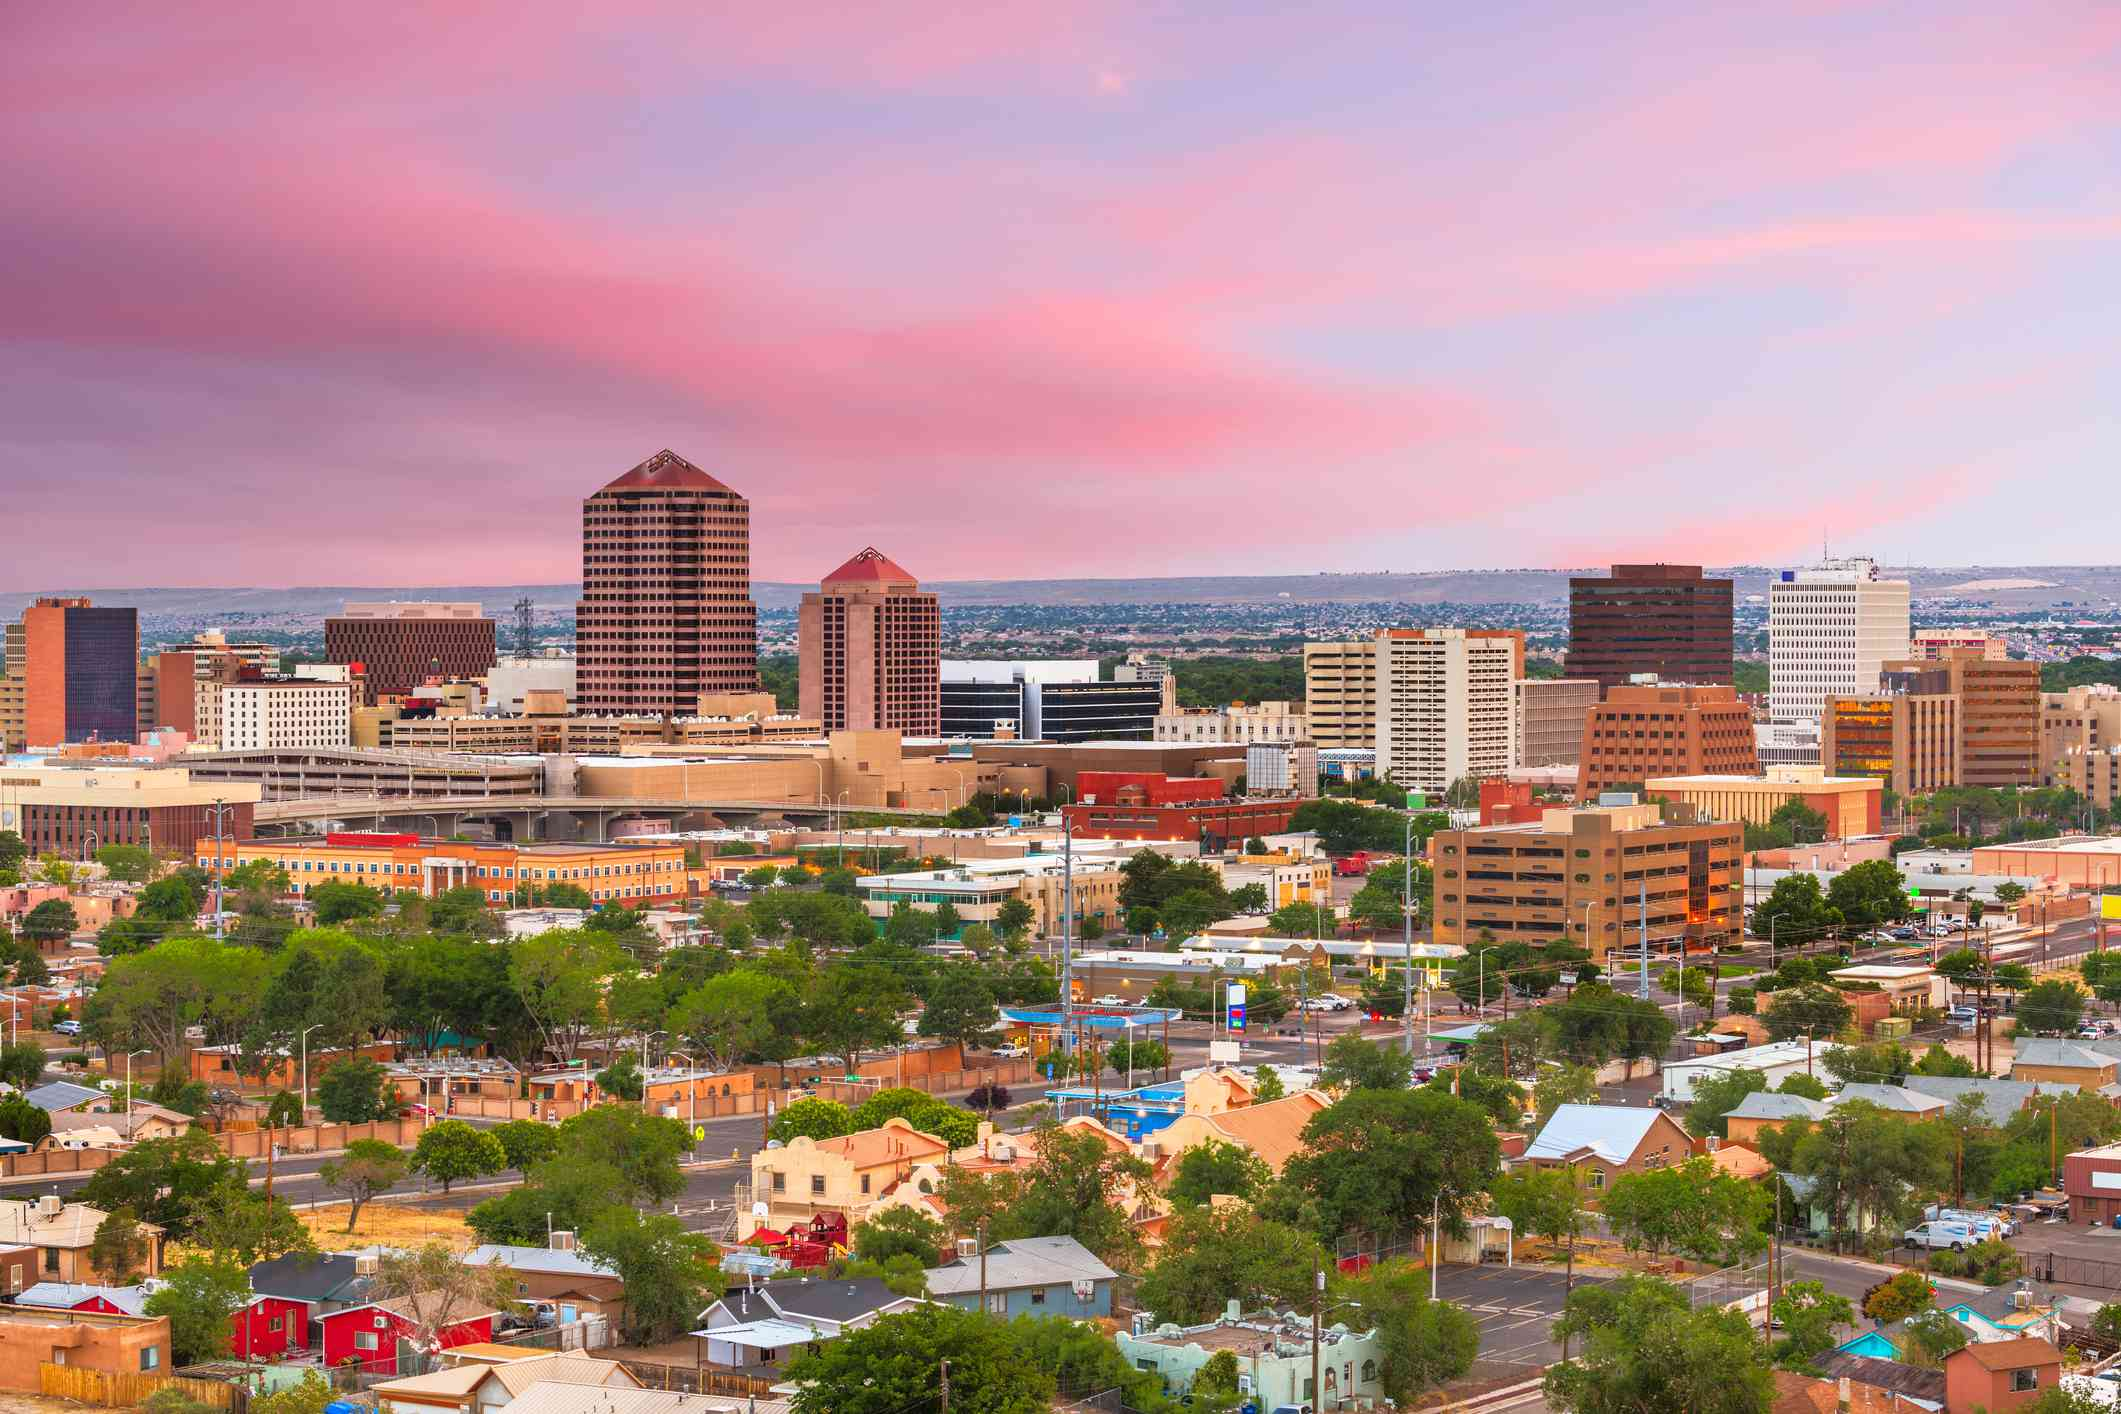 Aerial view of downtown Albuquerque at sunset